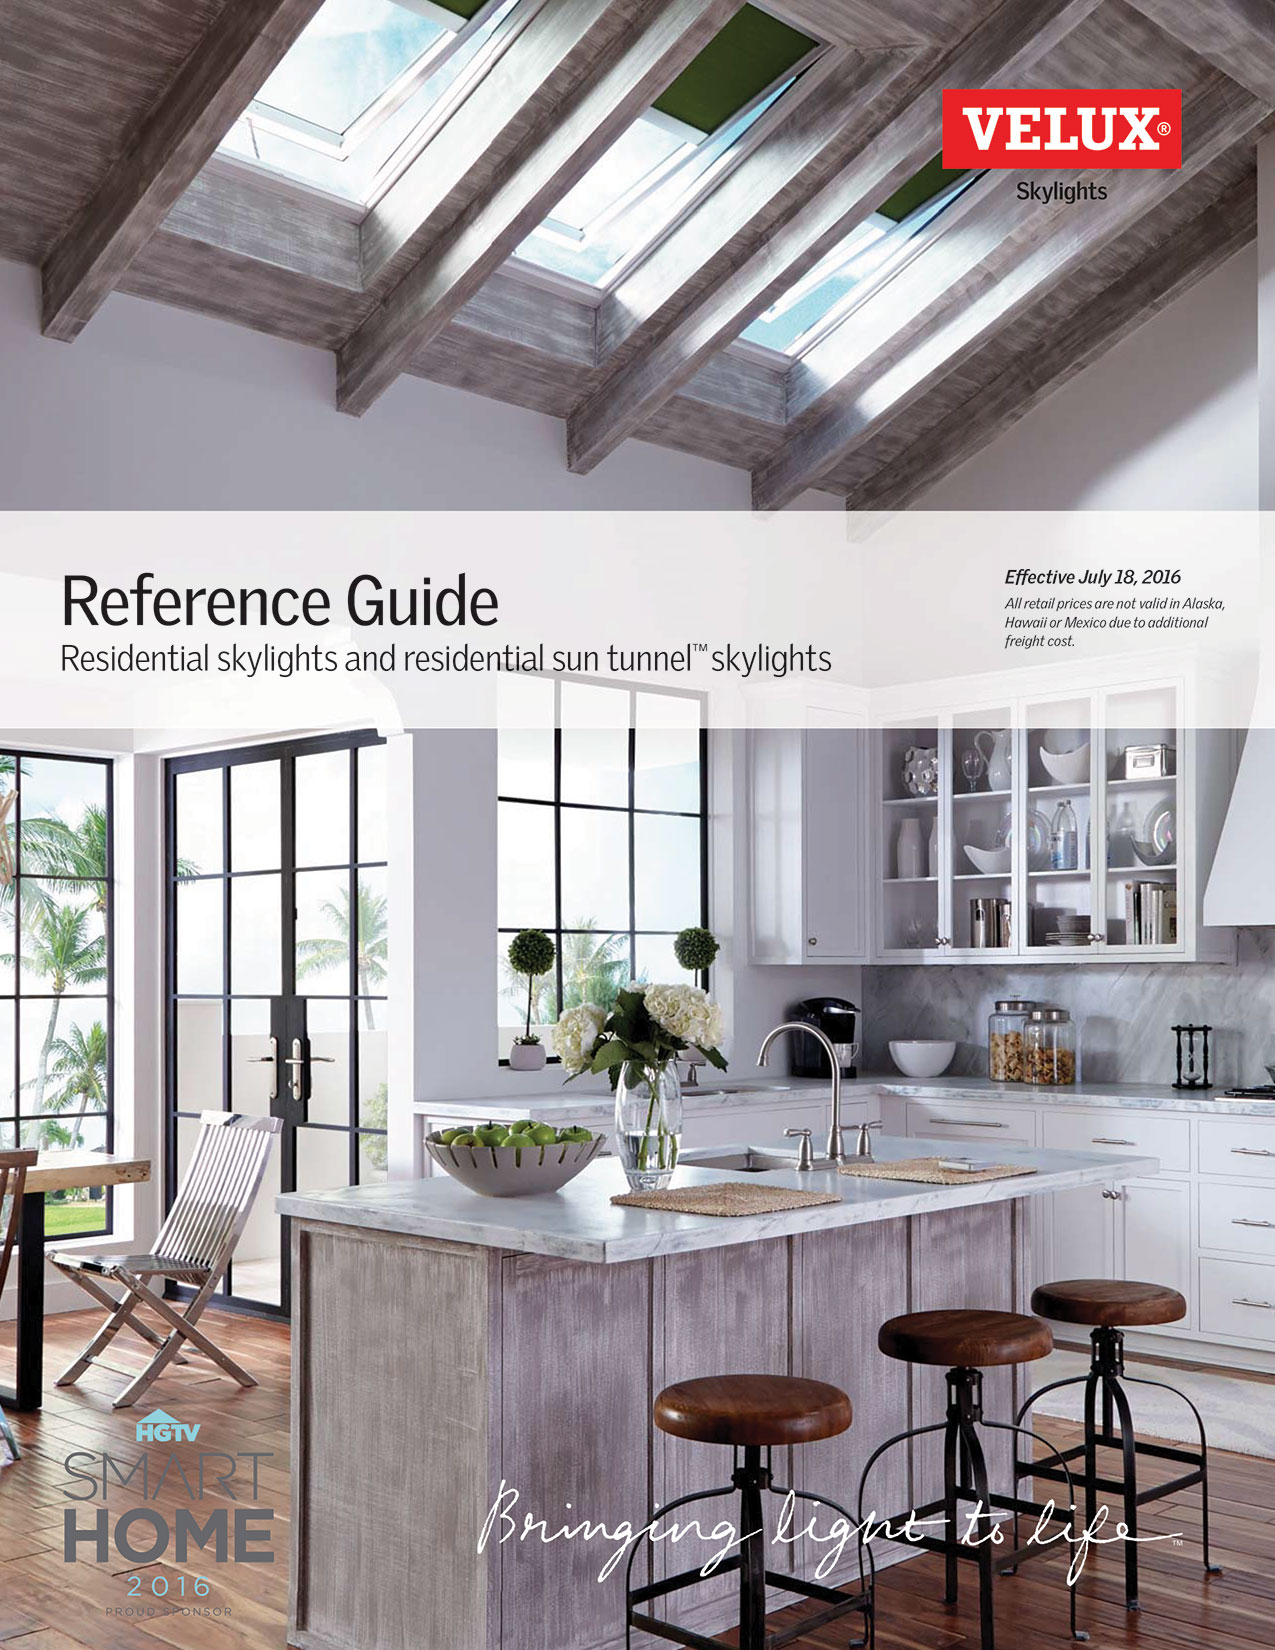 Skylight reference guide brochure